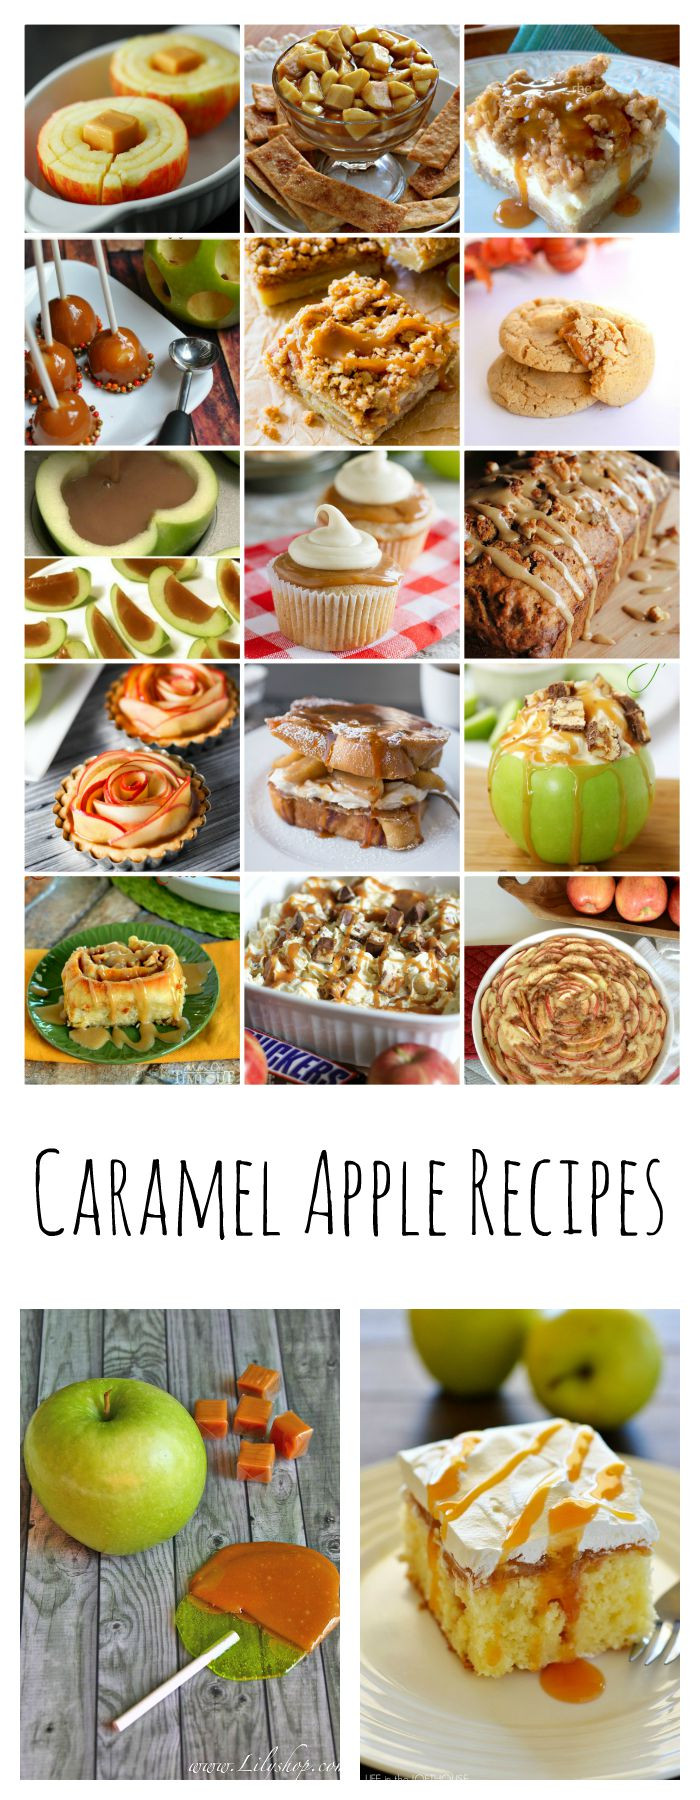 Apple Recipes For Fall  Caramel Apple Recipes The Idea Room